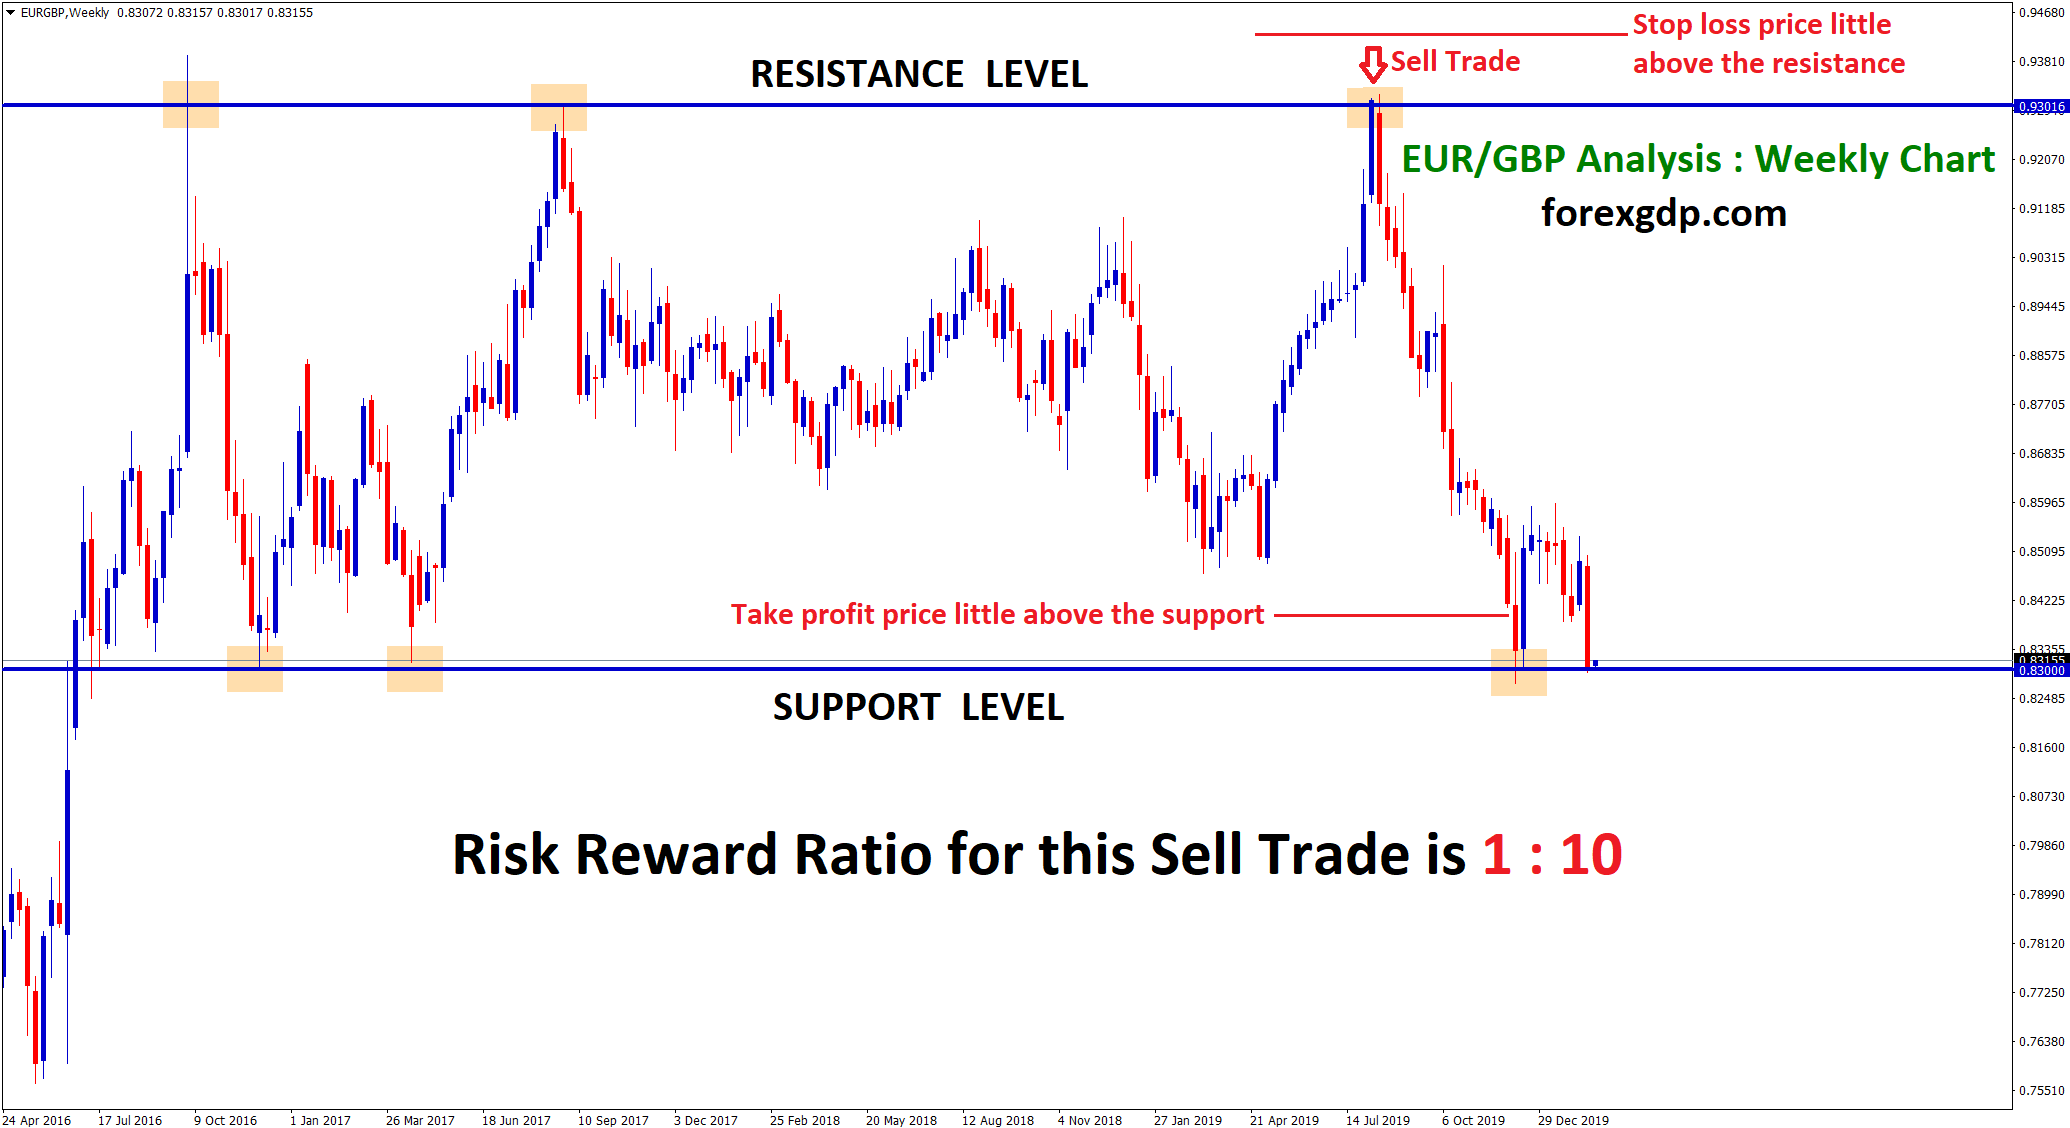 Sell trade at resistance level with low risk high reward